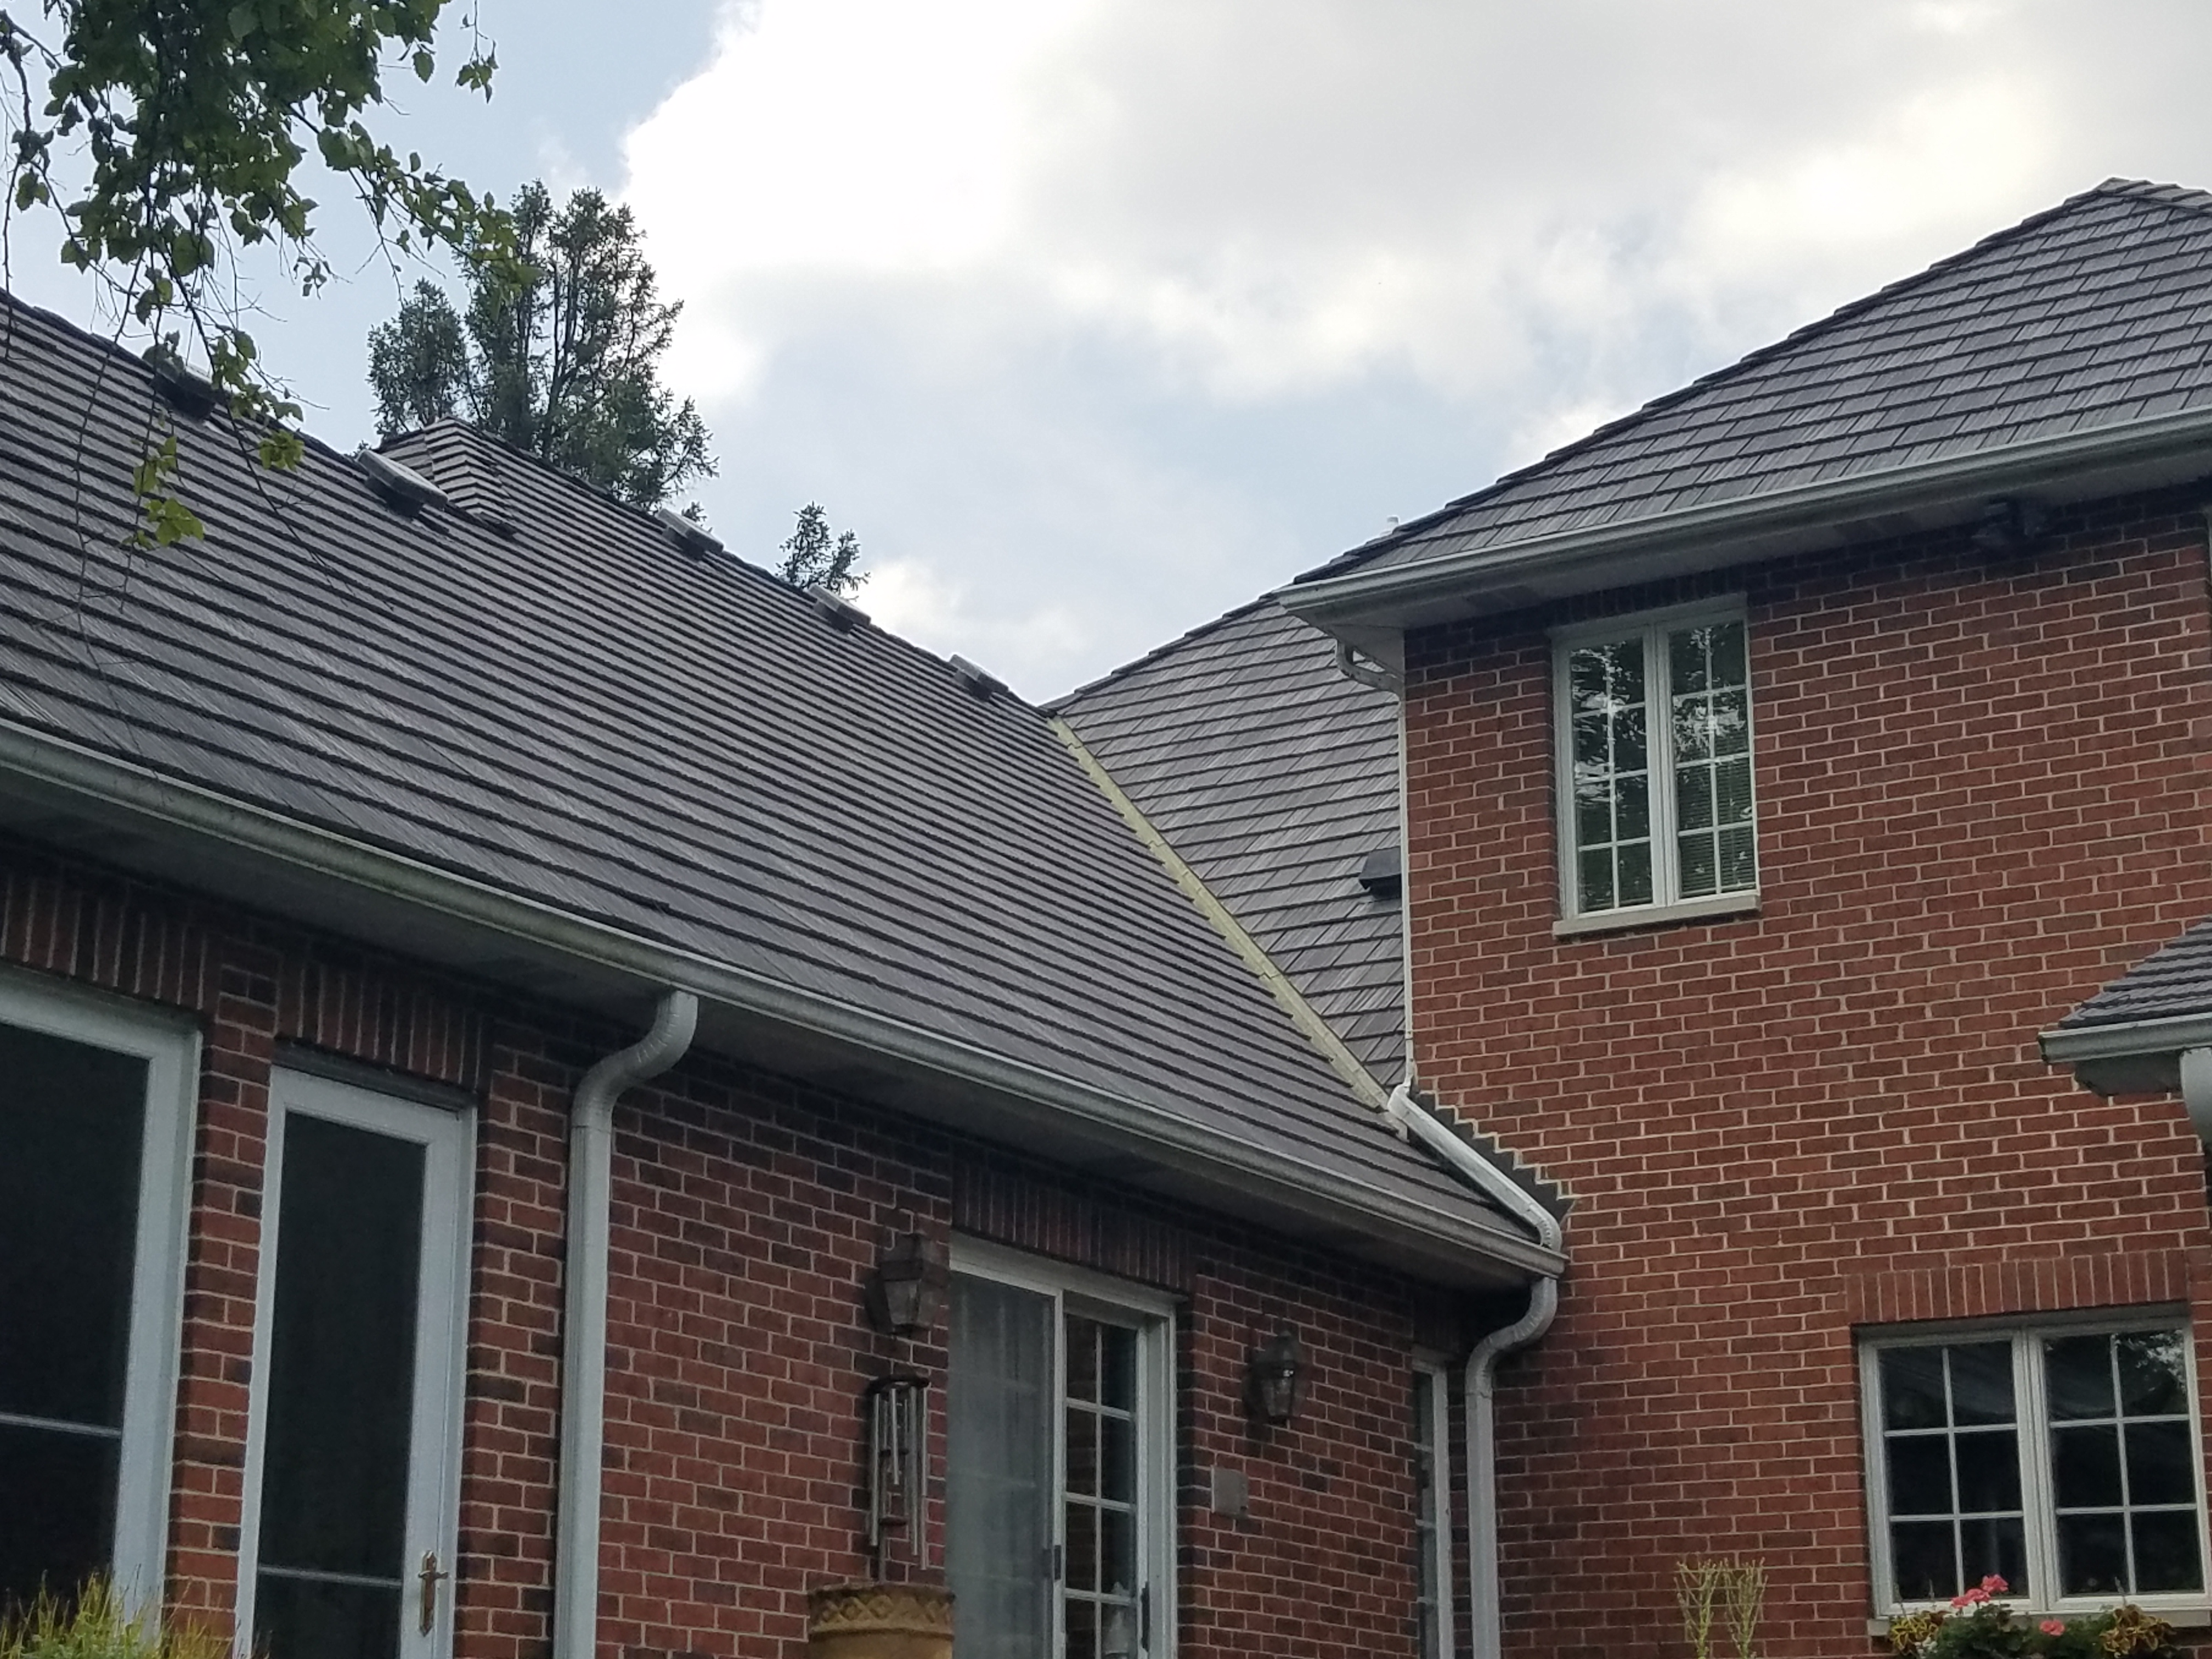 A shot of a beautiful roof on a home in Naperville